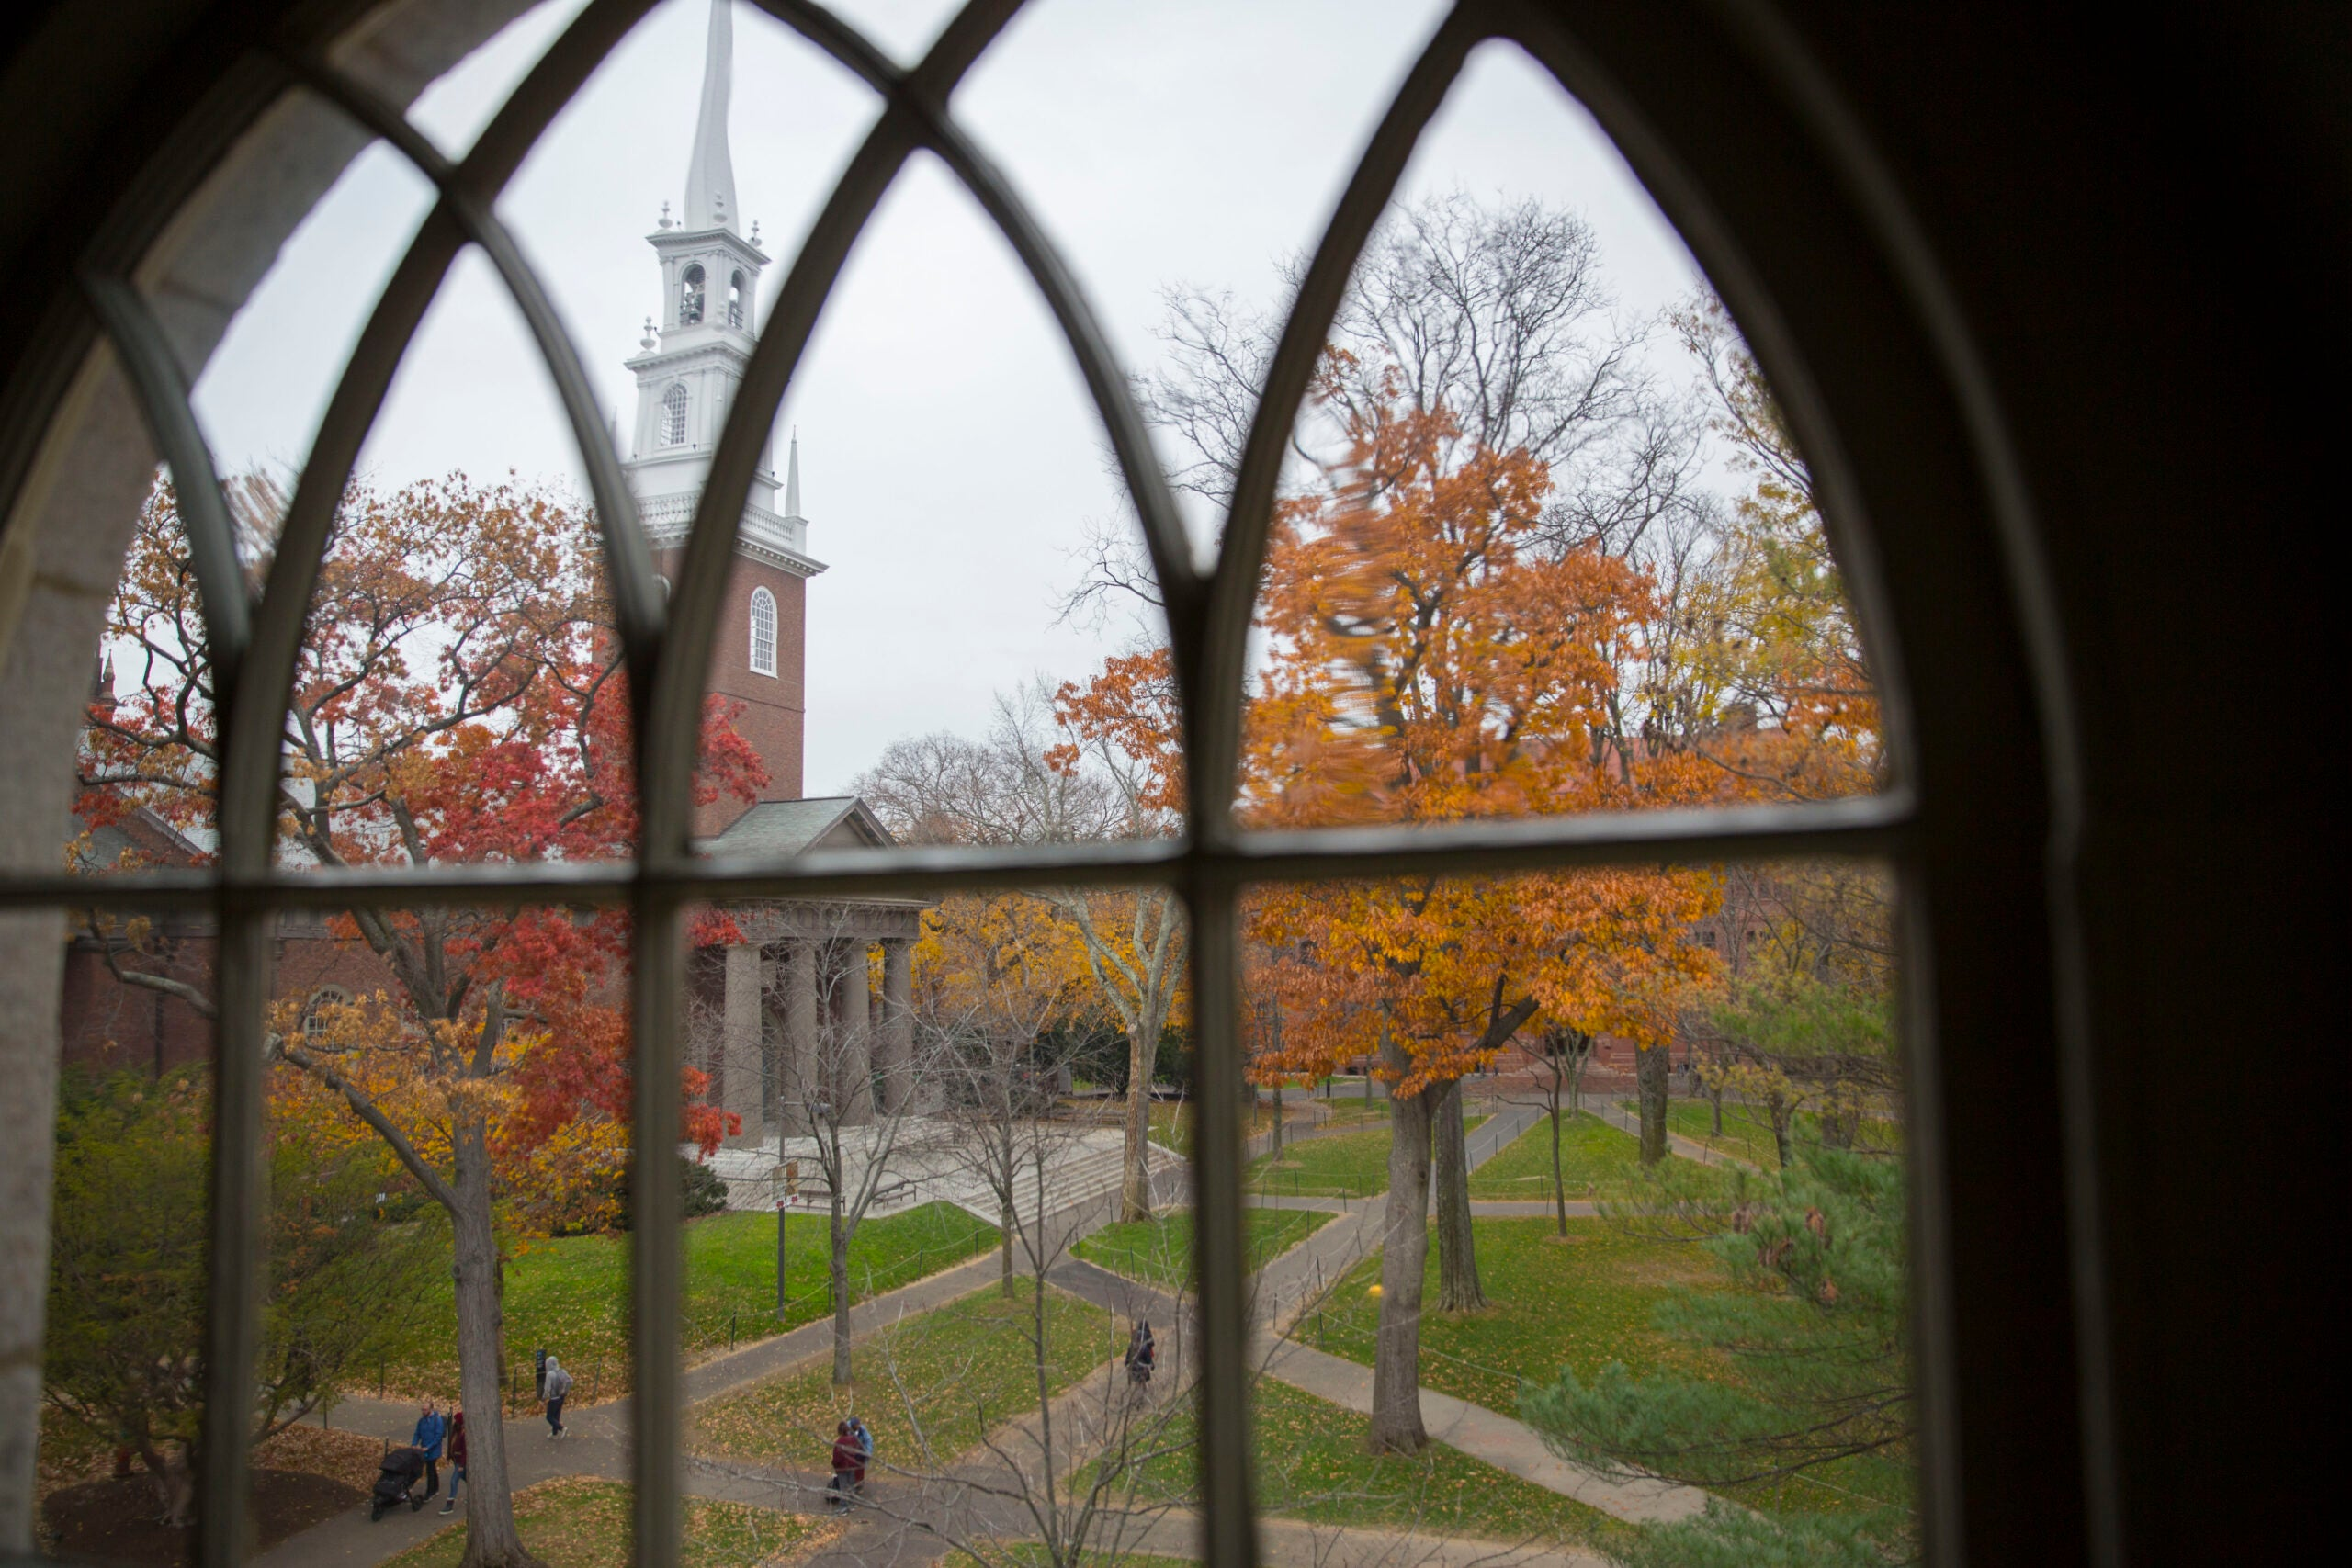 A view of Harvard Yard from a window